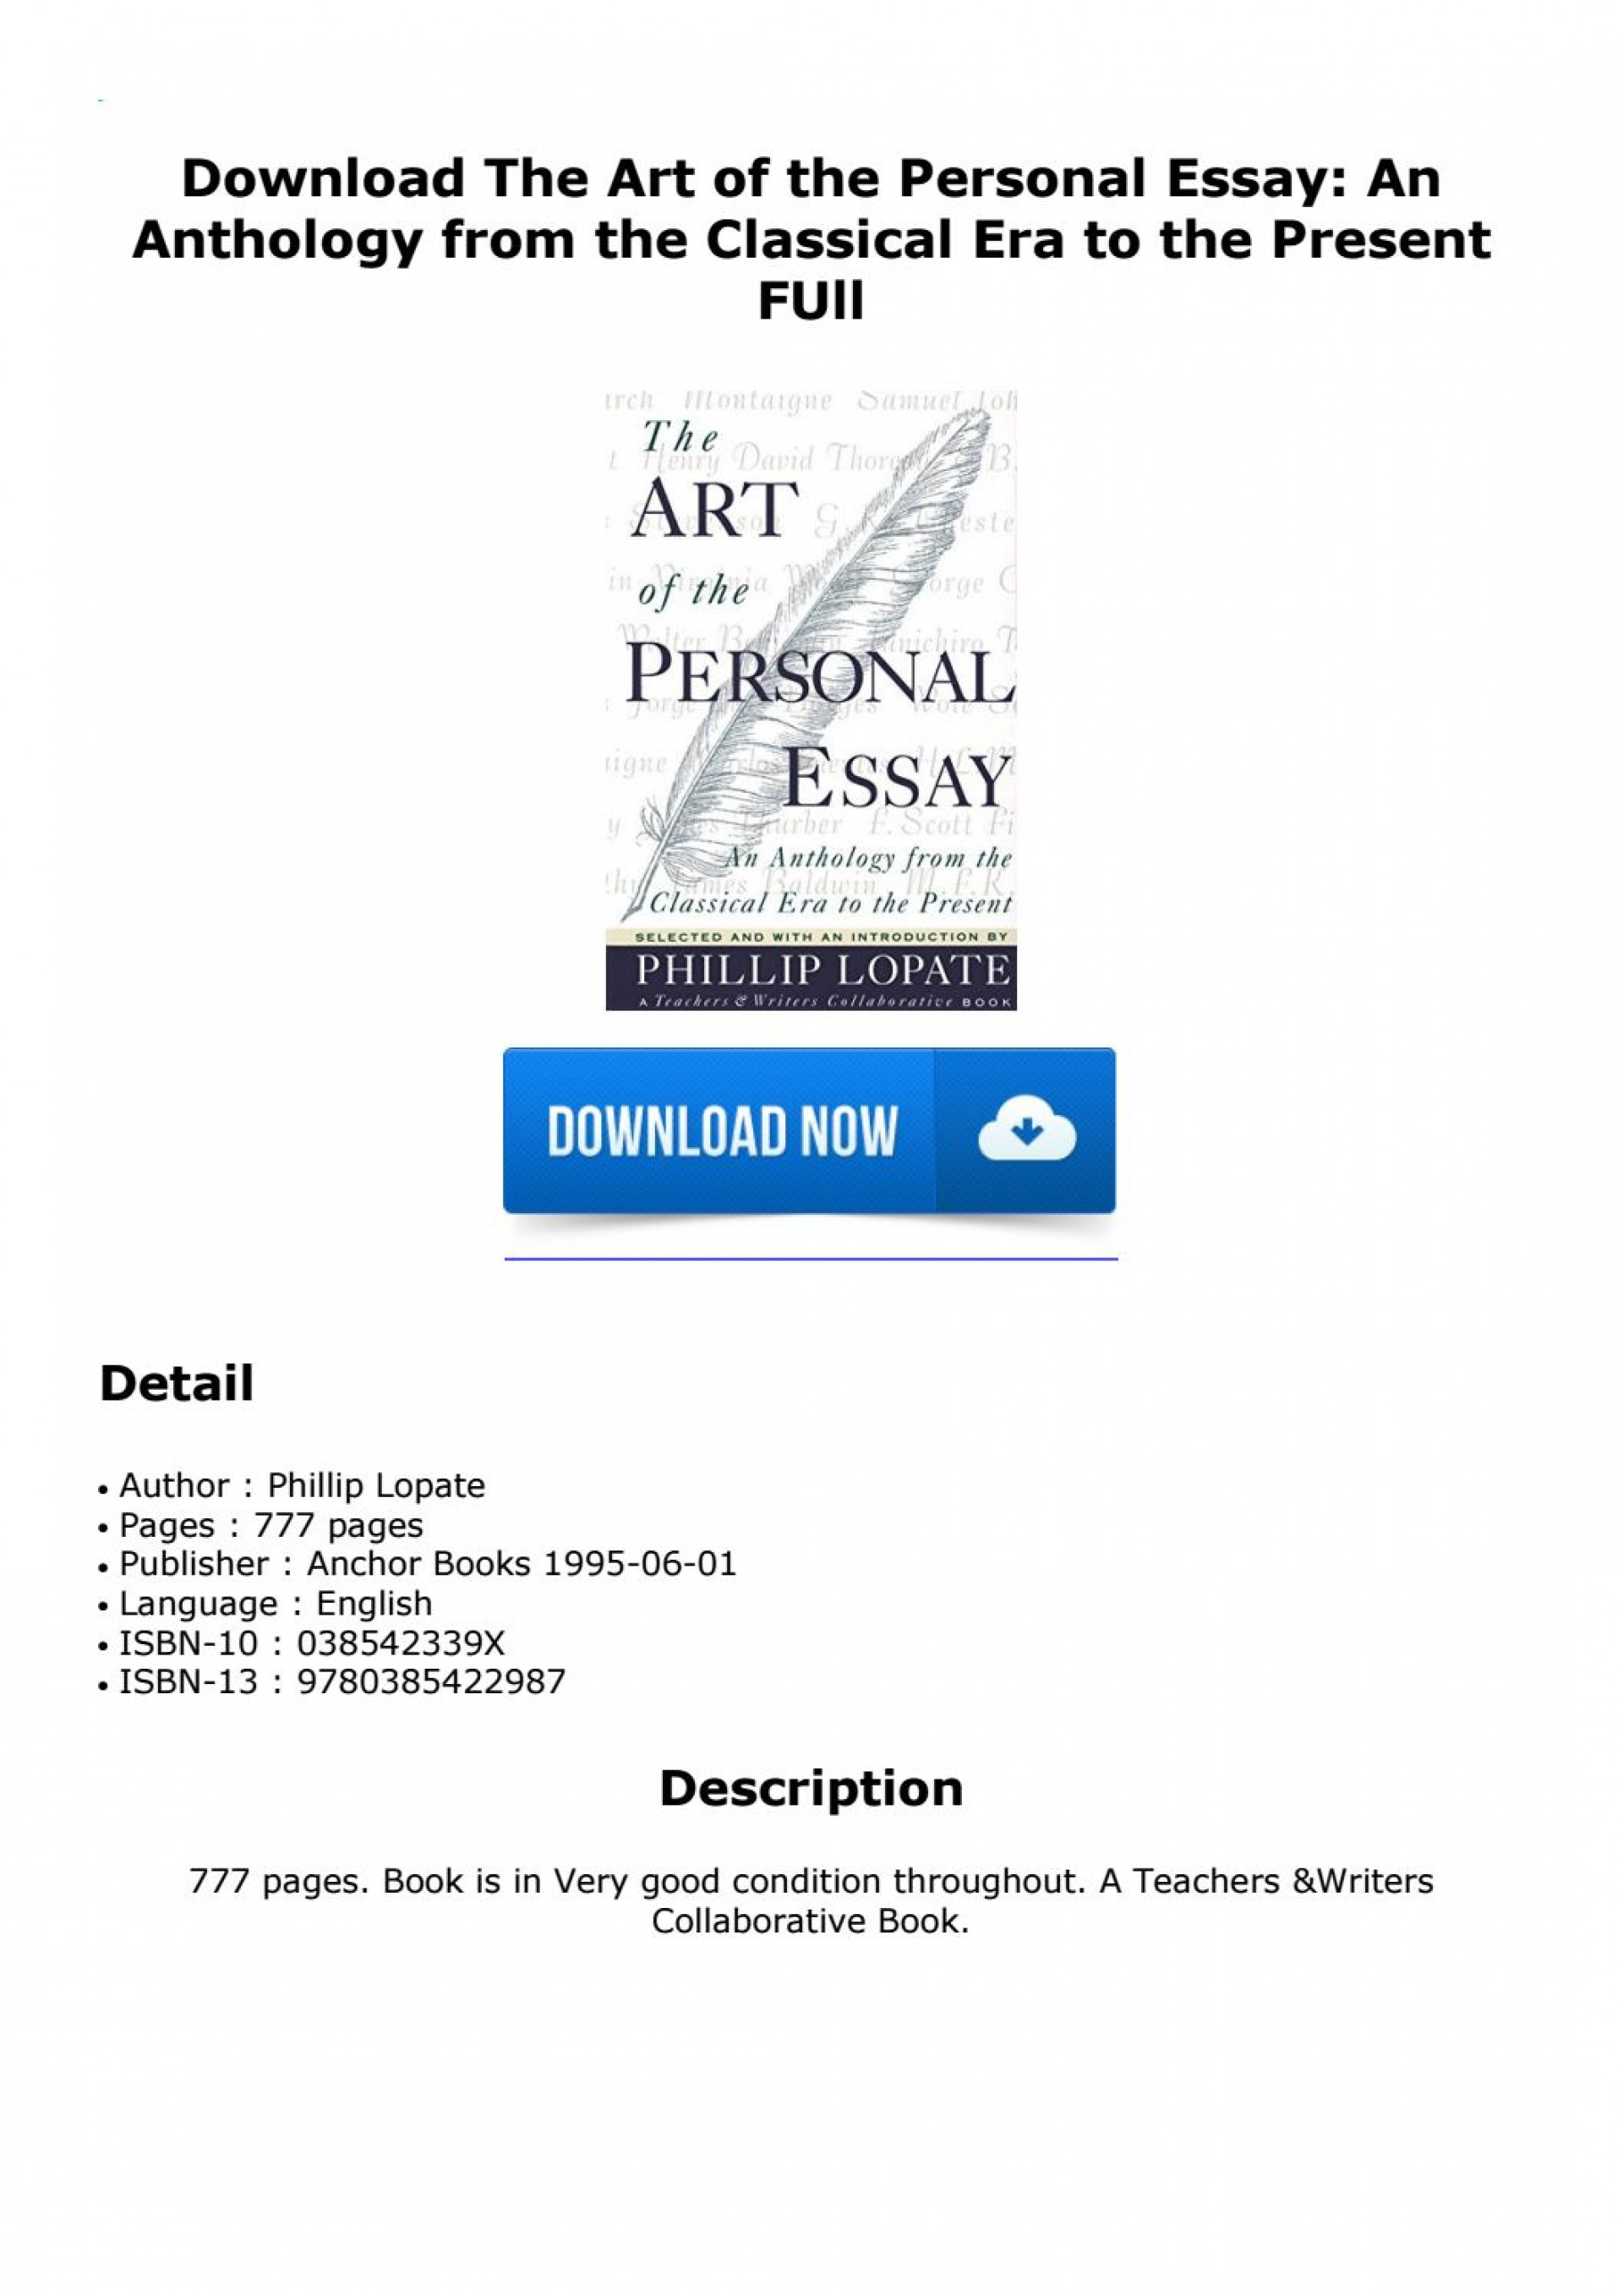 002 Page 1 The Art Of Personal Essay Beautiful Pdf Download Table Contents 1920